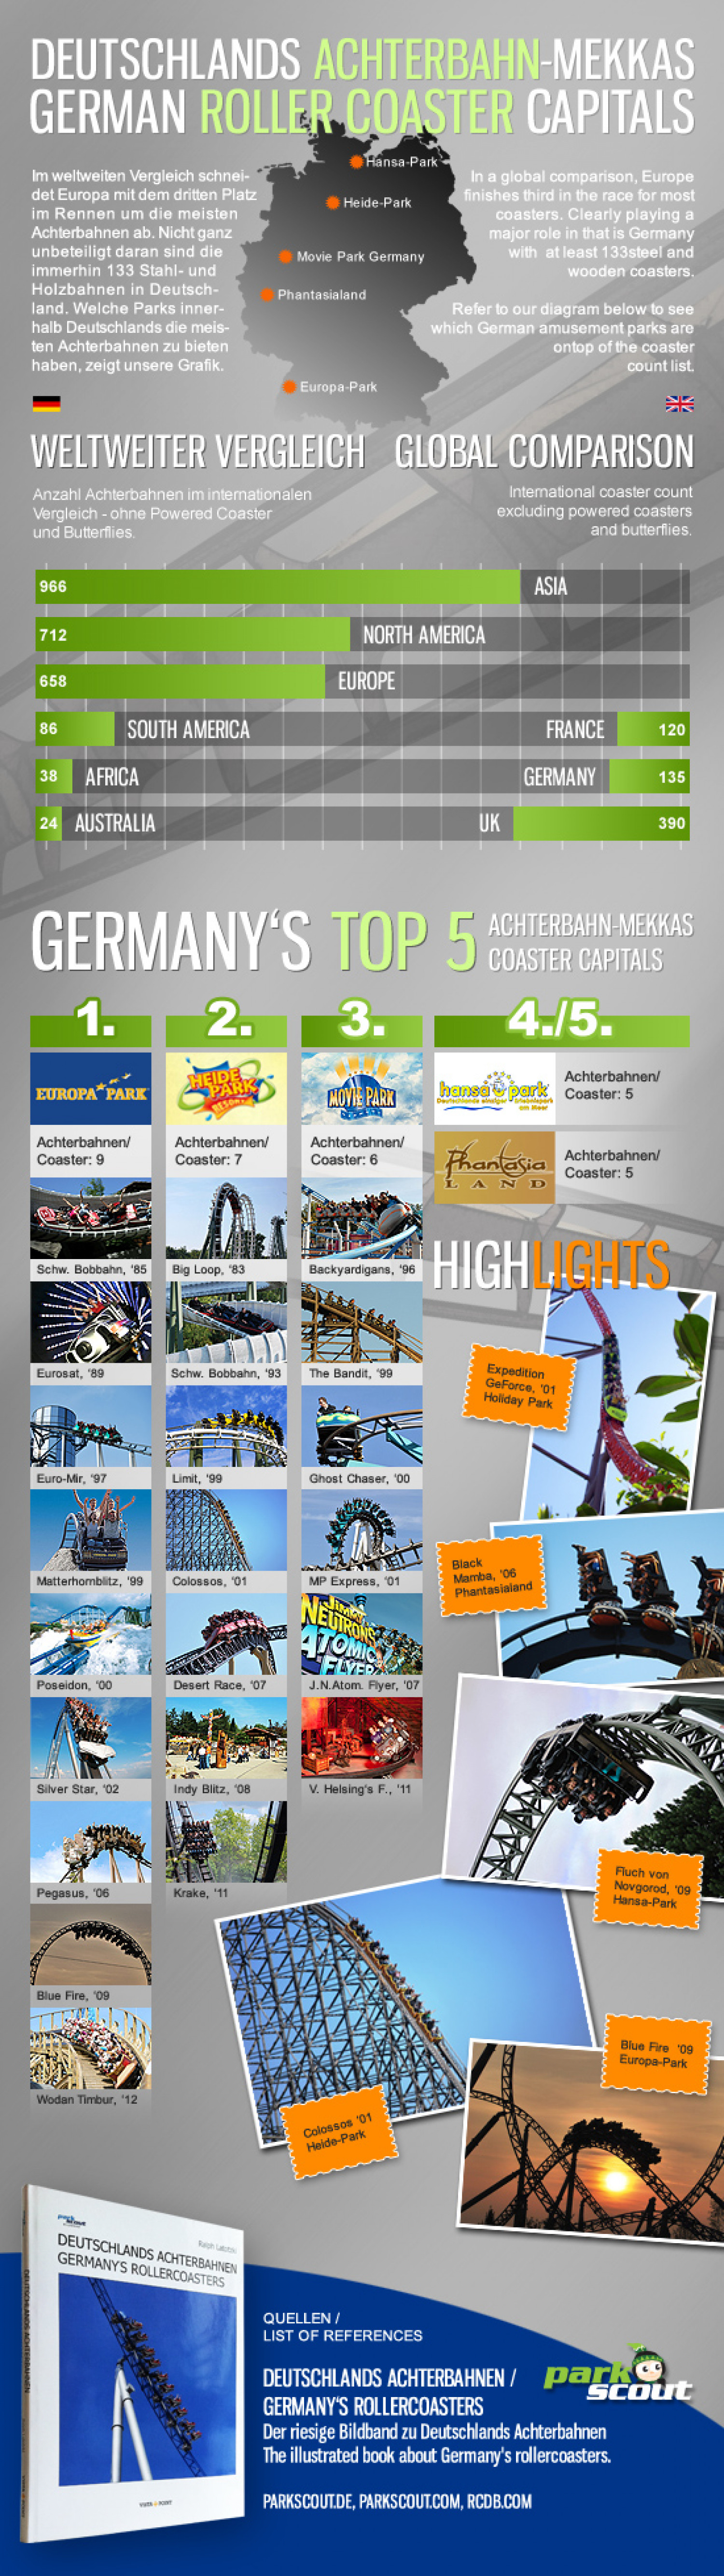 German Roller Coaster Capitals Infographic